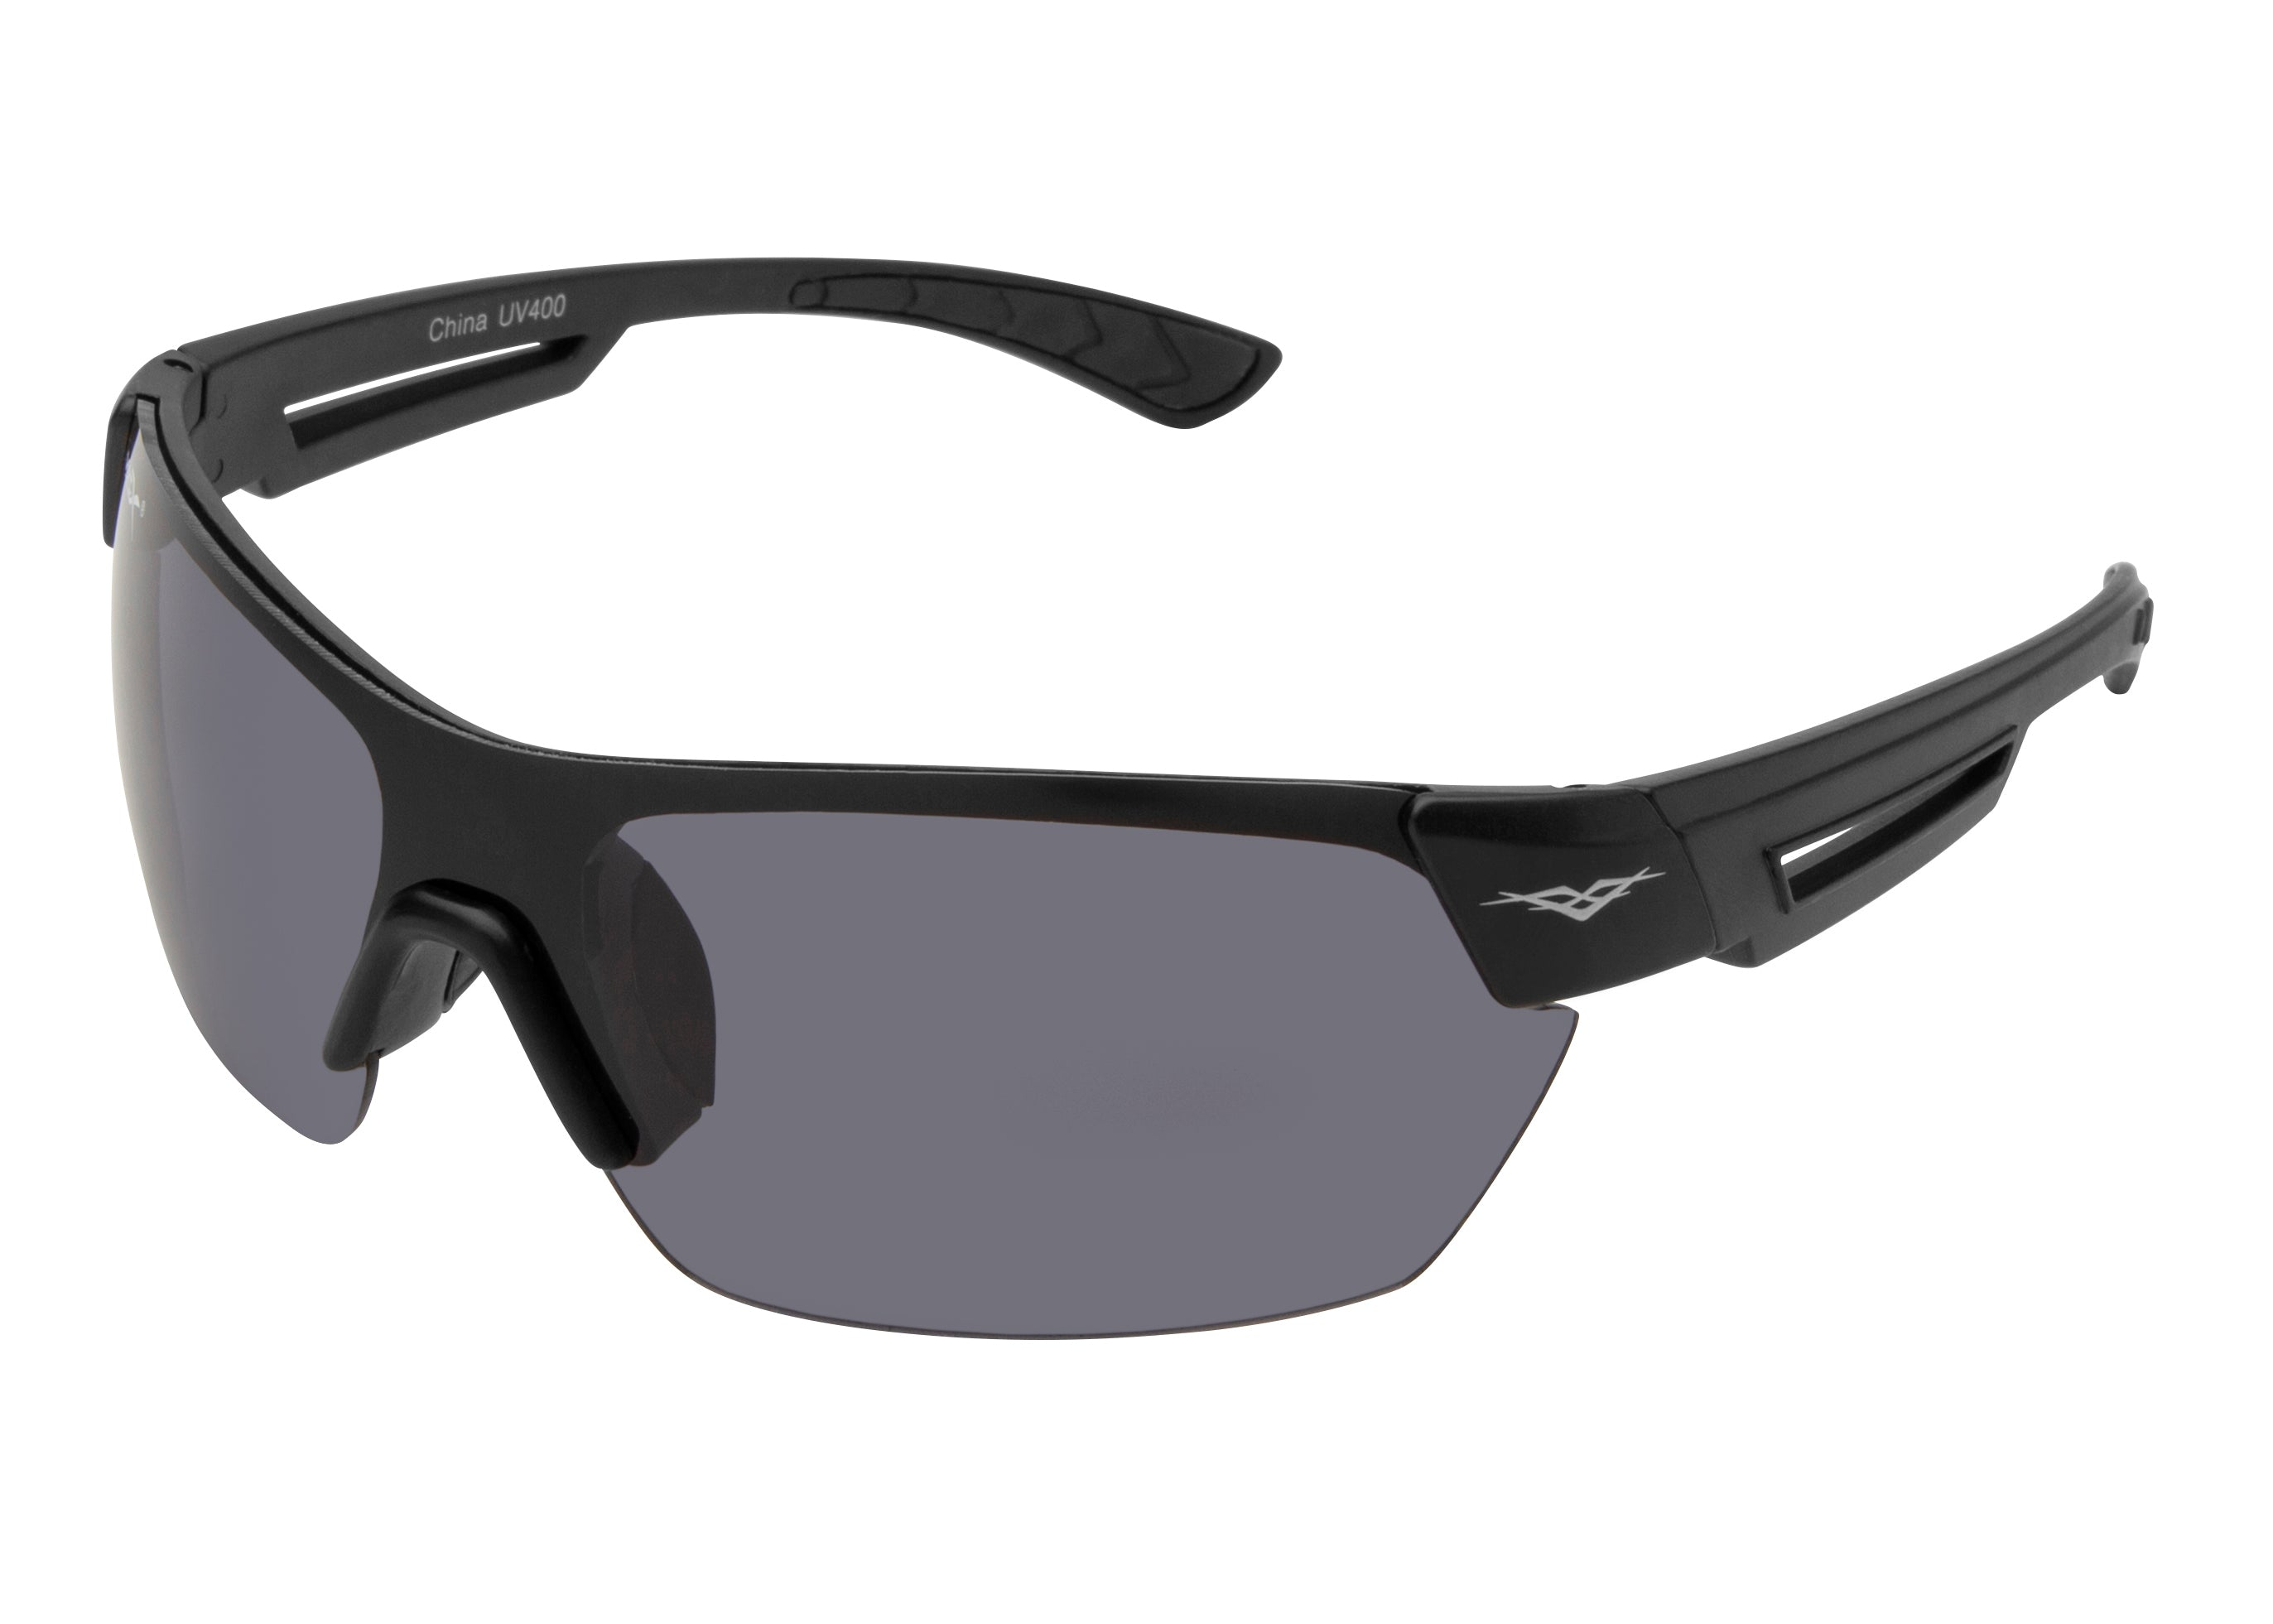 59212 - VertX PC Sport Wrap Sunglasses